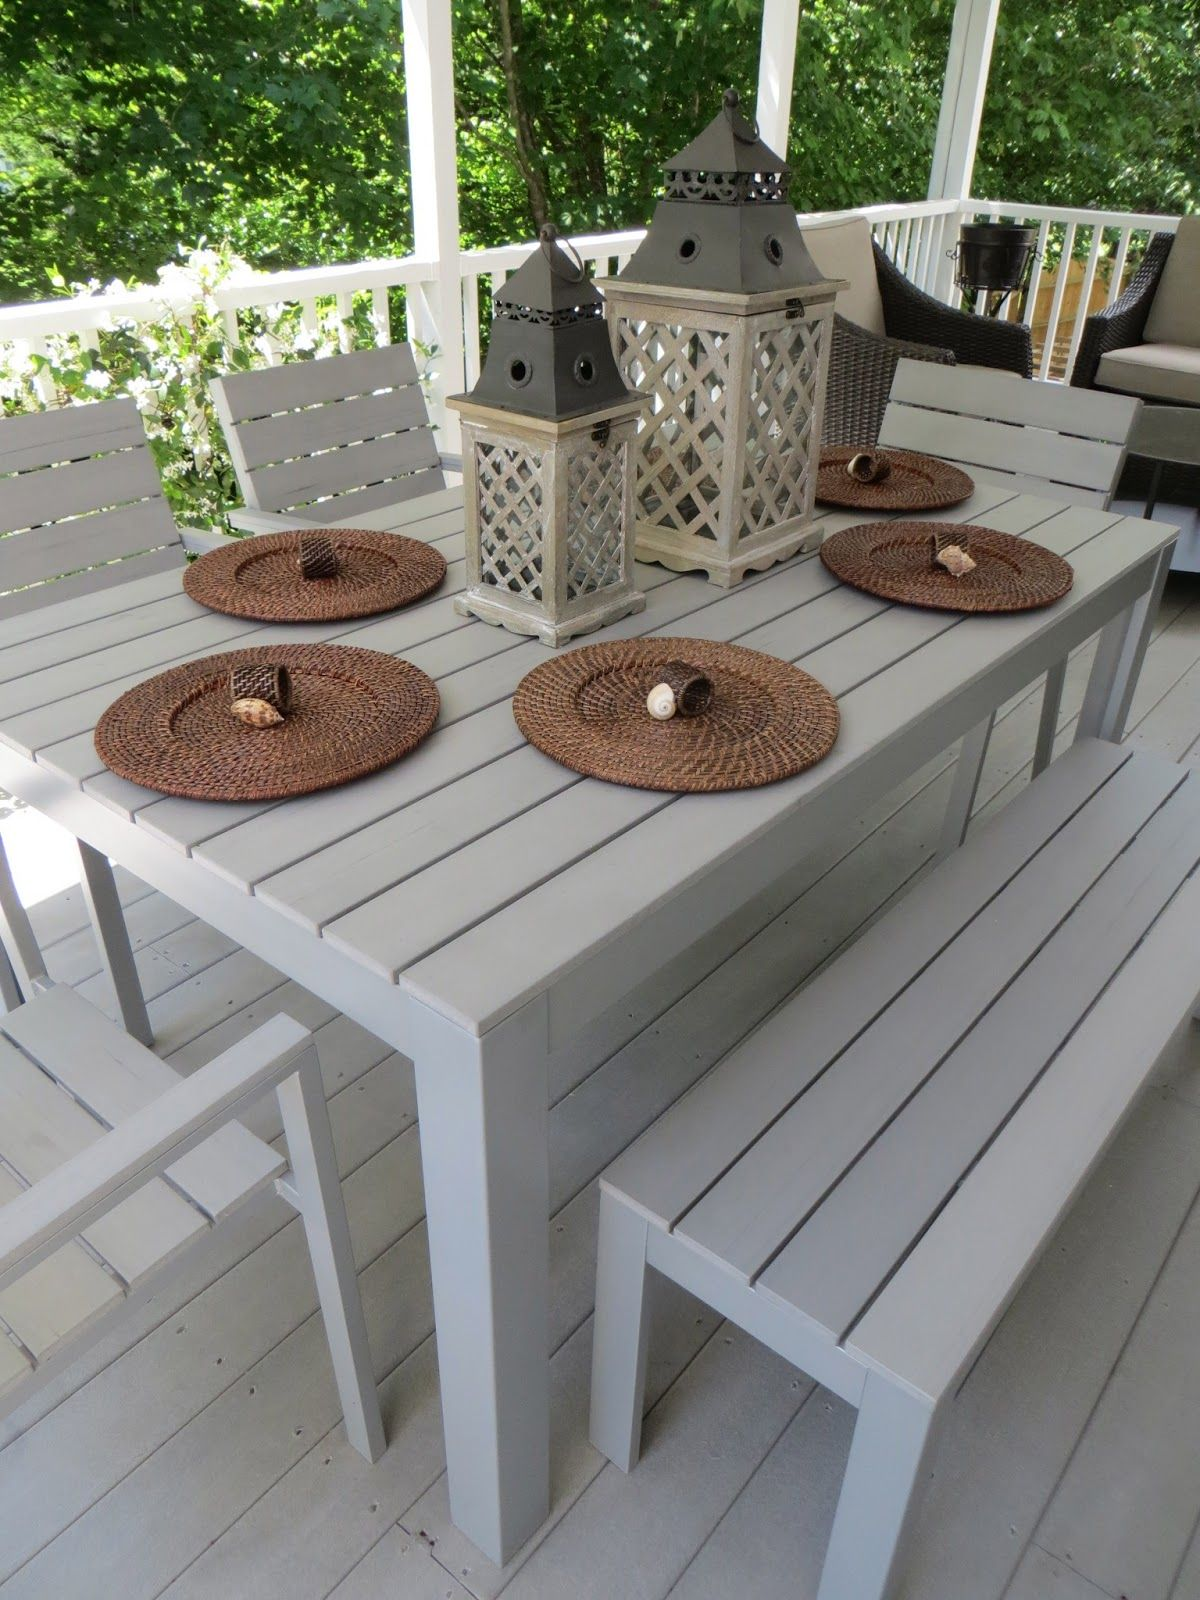 childrens outdoor furniture ikea on simply lkj back porch bones outdoor dining set ikea patio ikea outdoor outdoor dining set